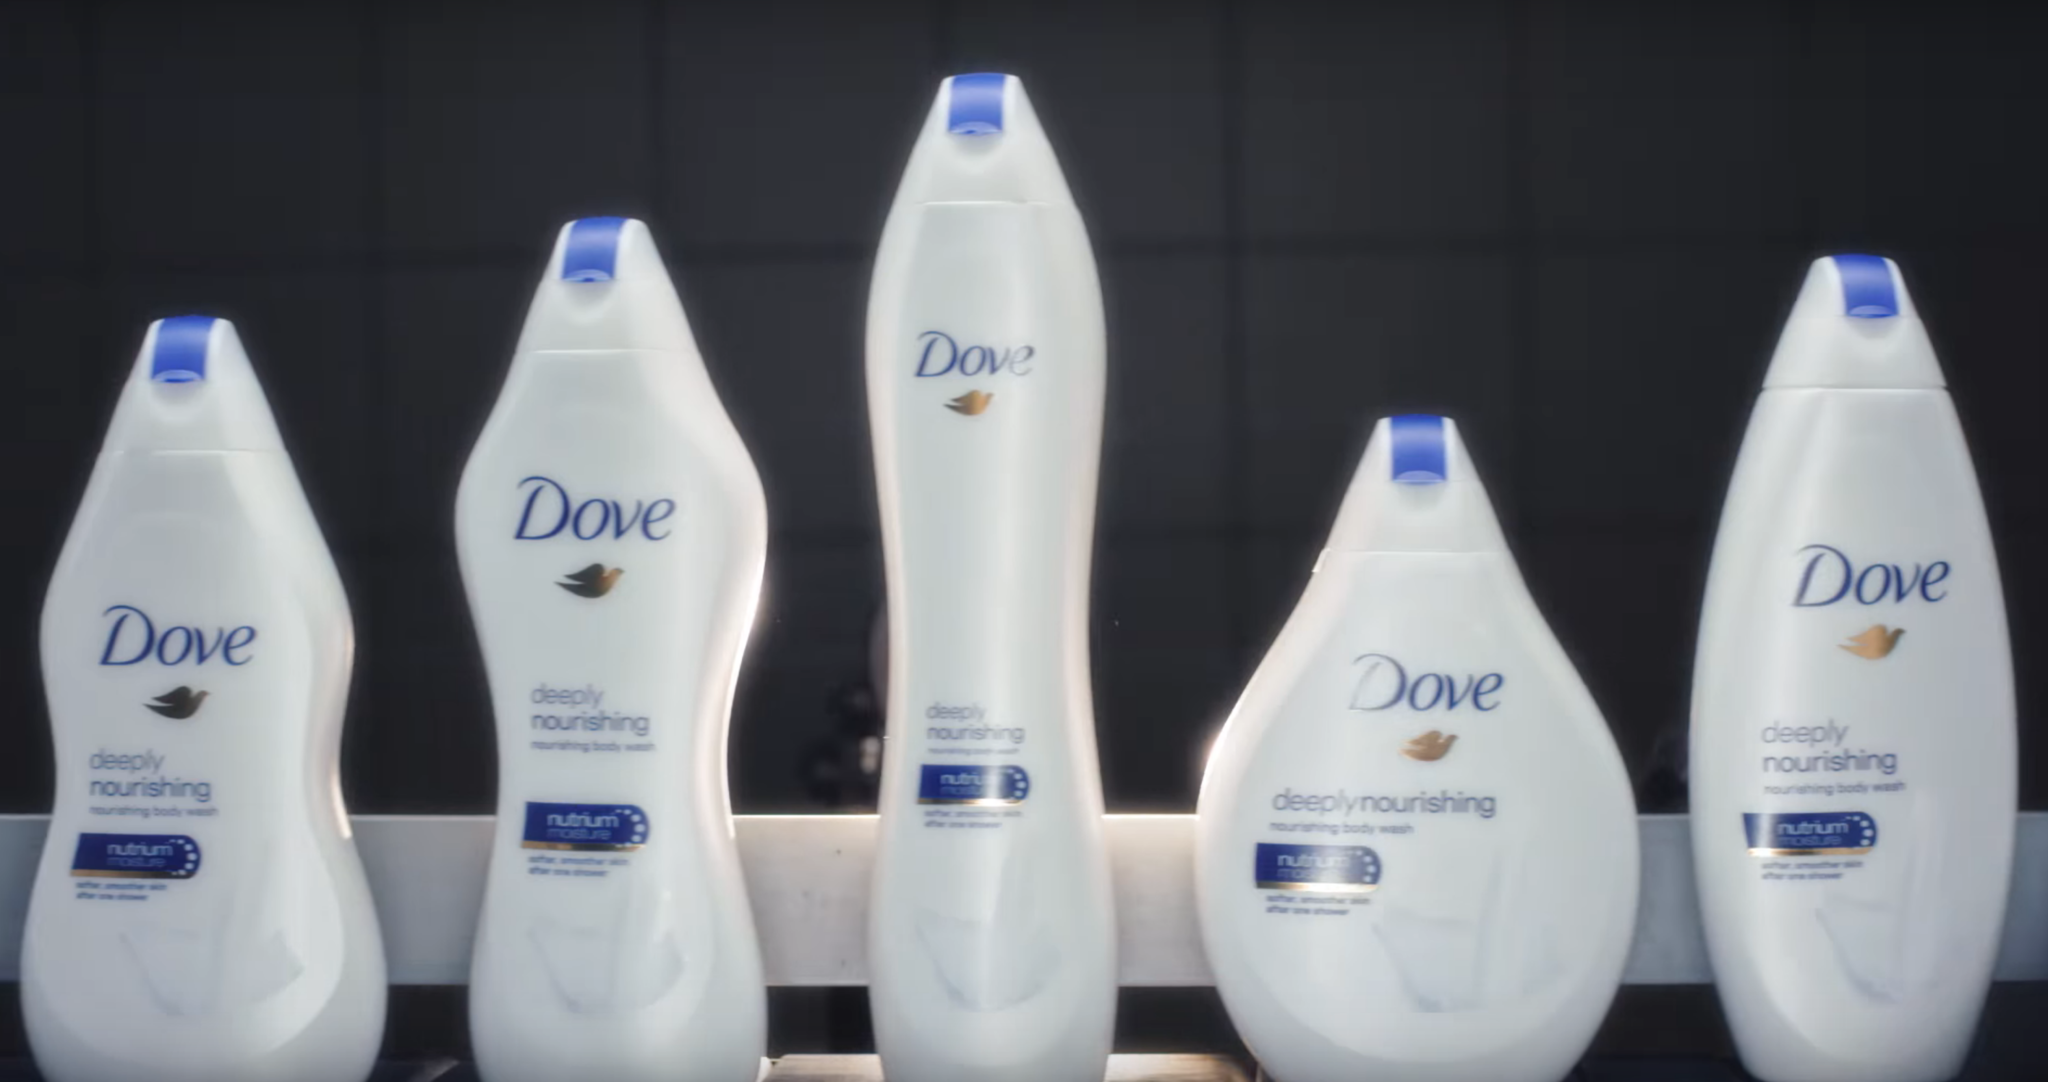 Why ladies didn't love Dove's latest gender-empowering ad stunt